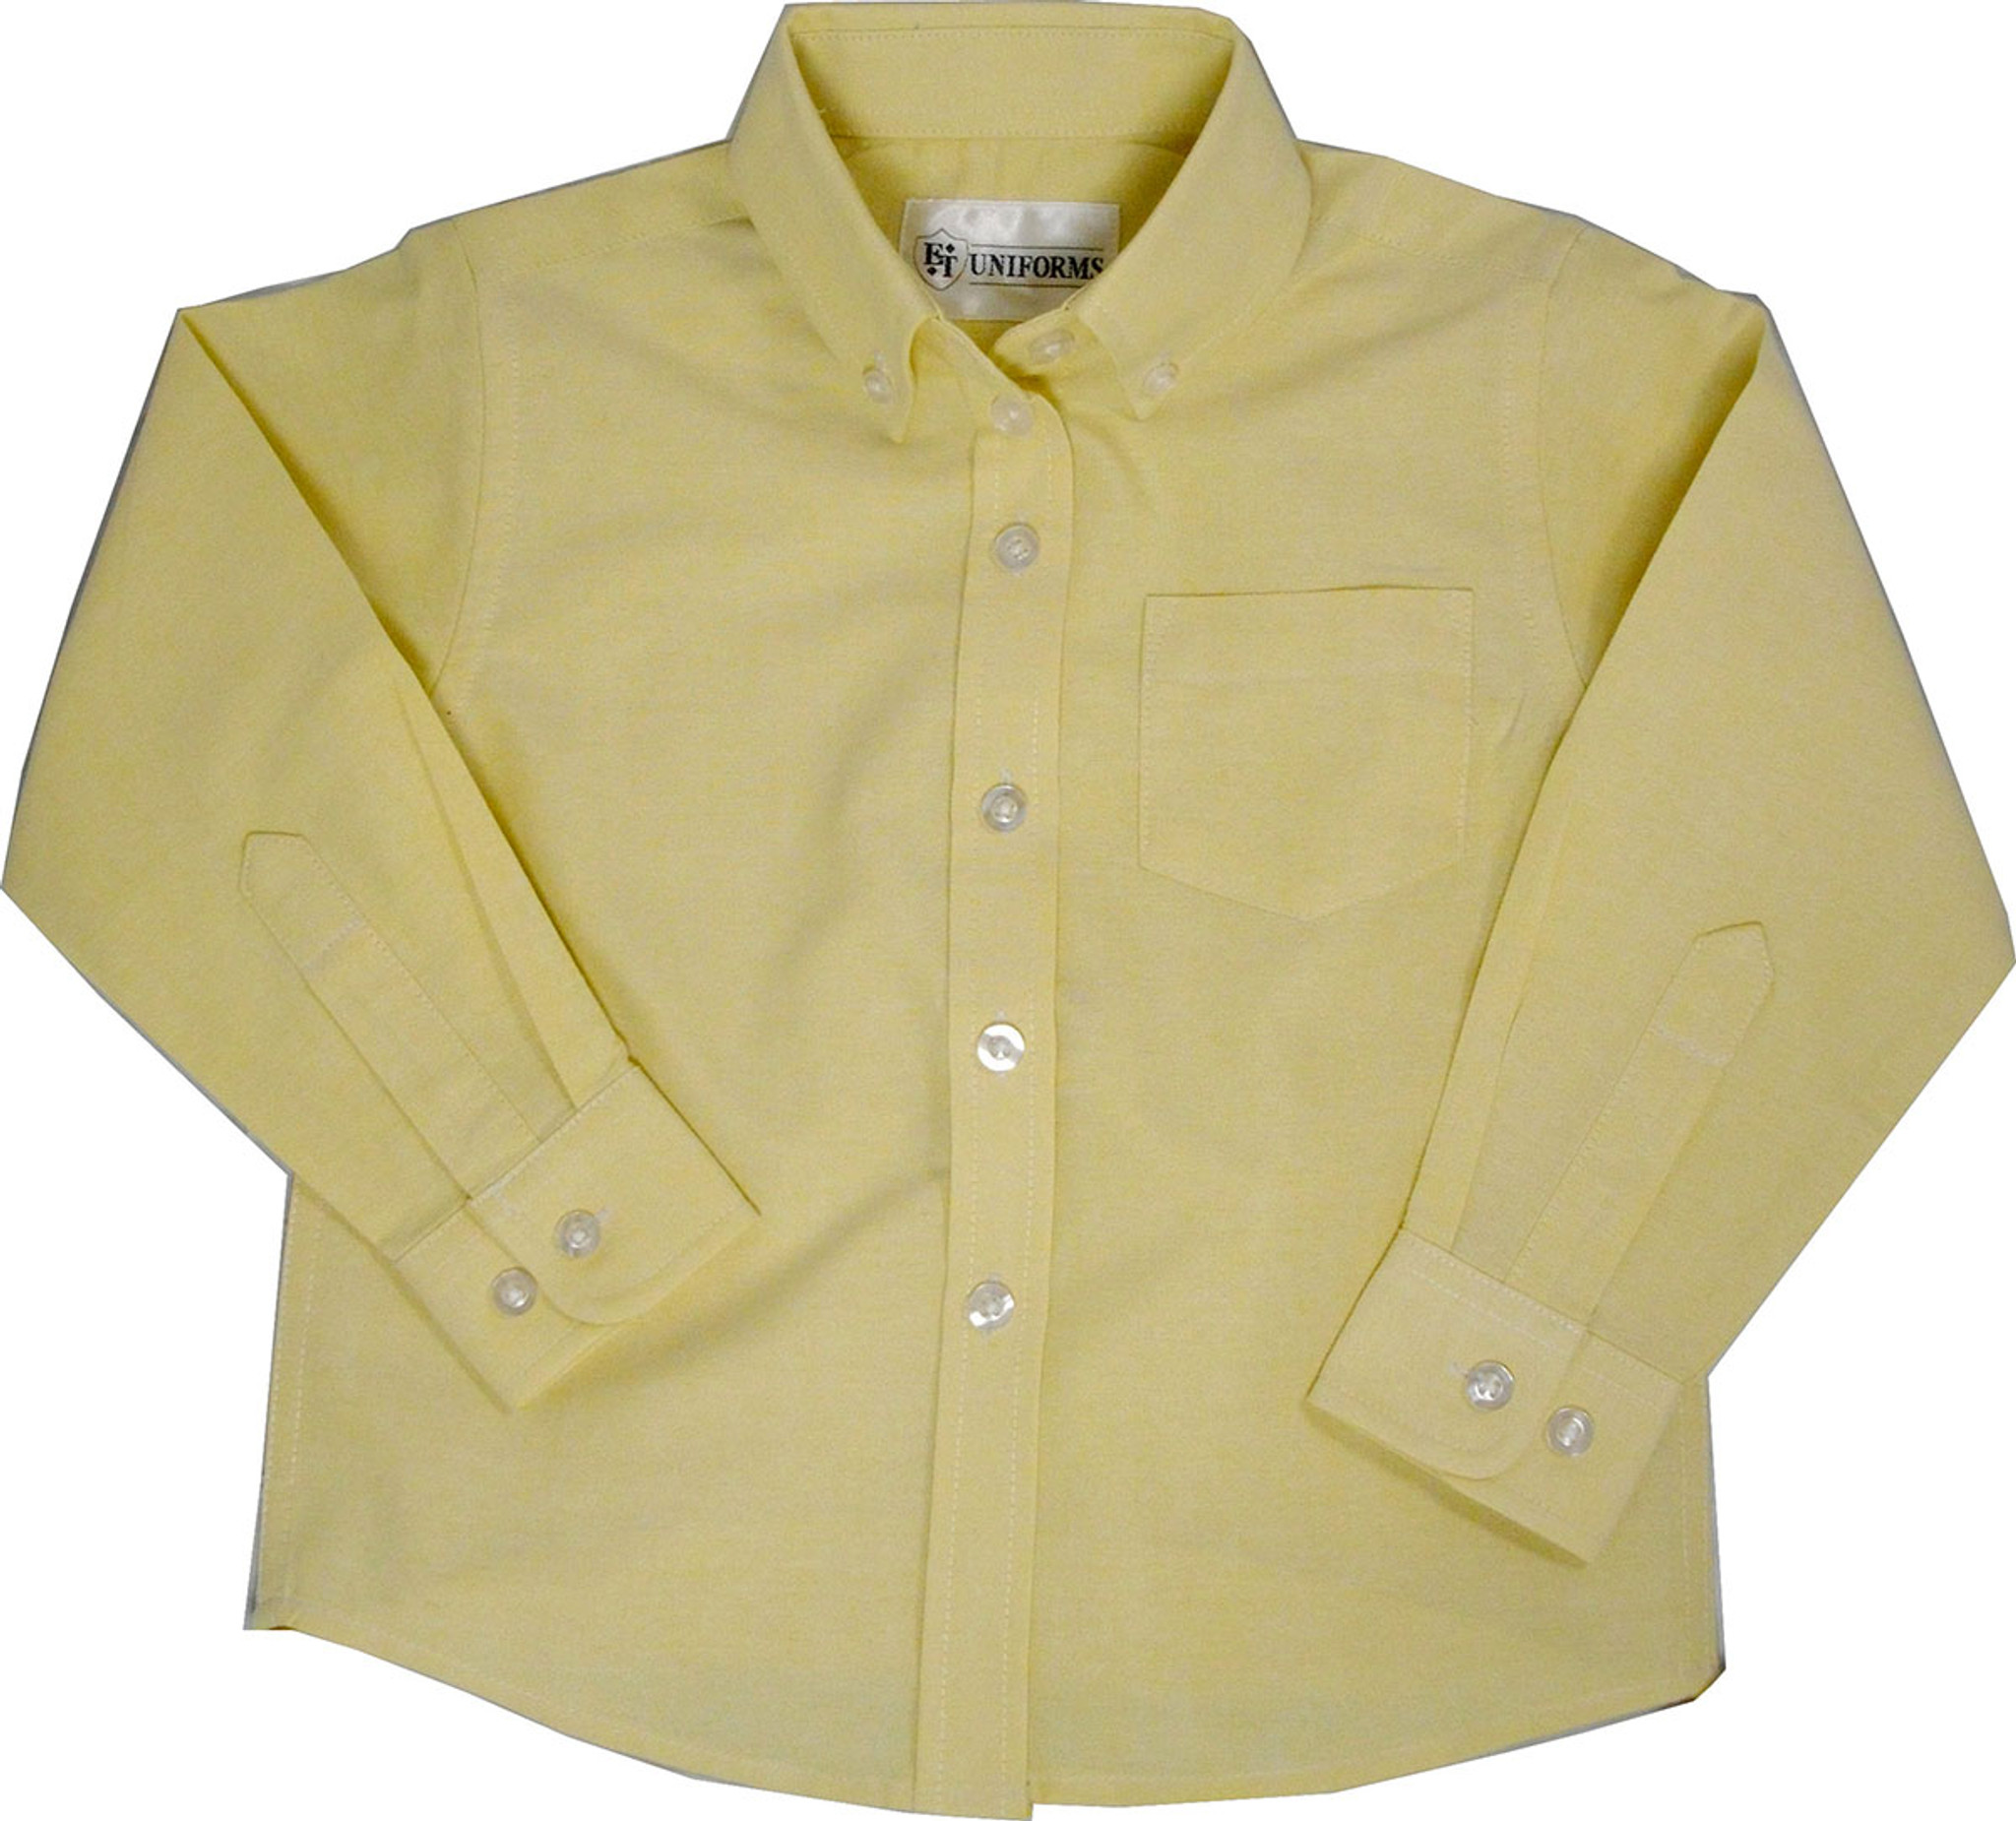 26d7153fb Girls Yellow Oxford School Blouse Long Sleeve - Engelic Uniforms